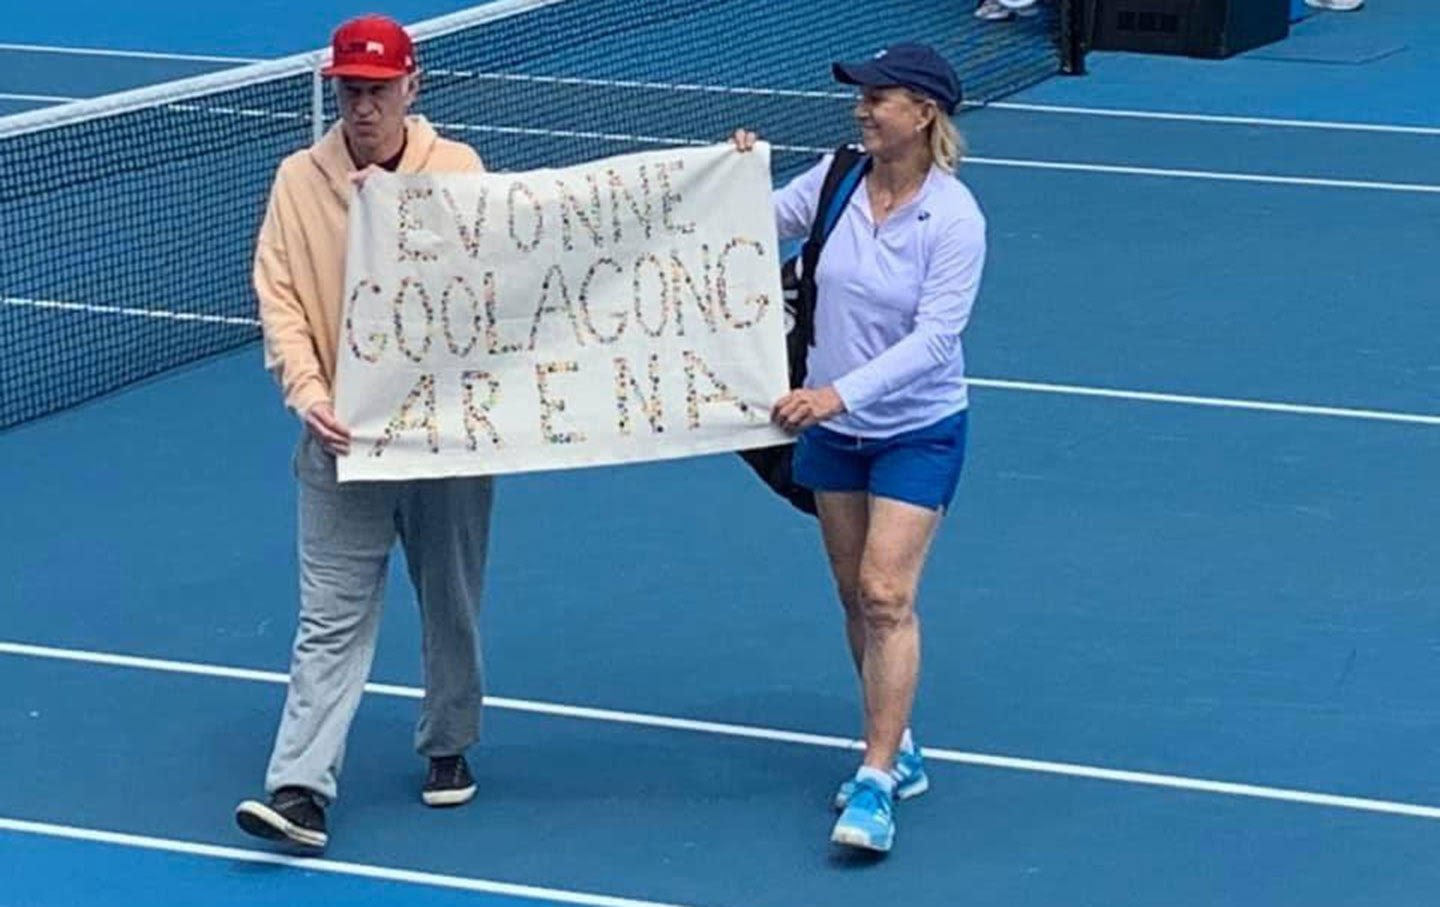 John McEnroe and Martina Navratilova walk onto the court at the Australian Open with a banner that reads